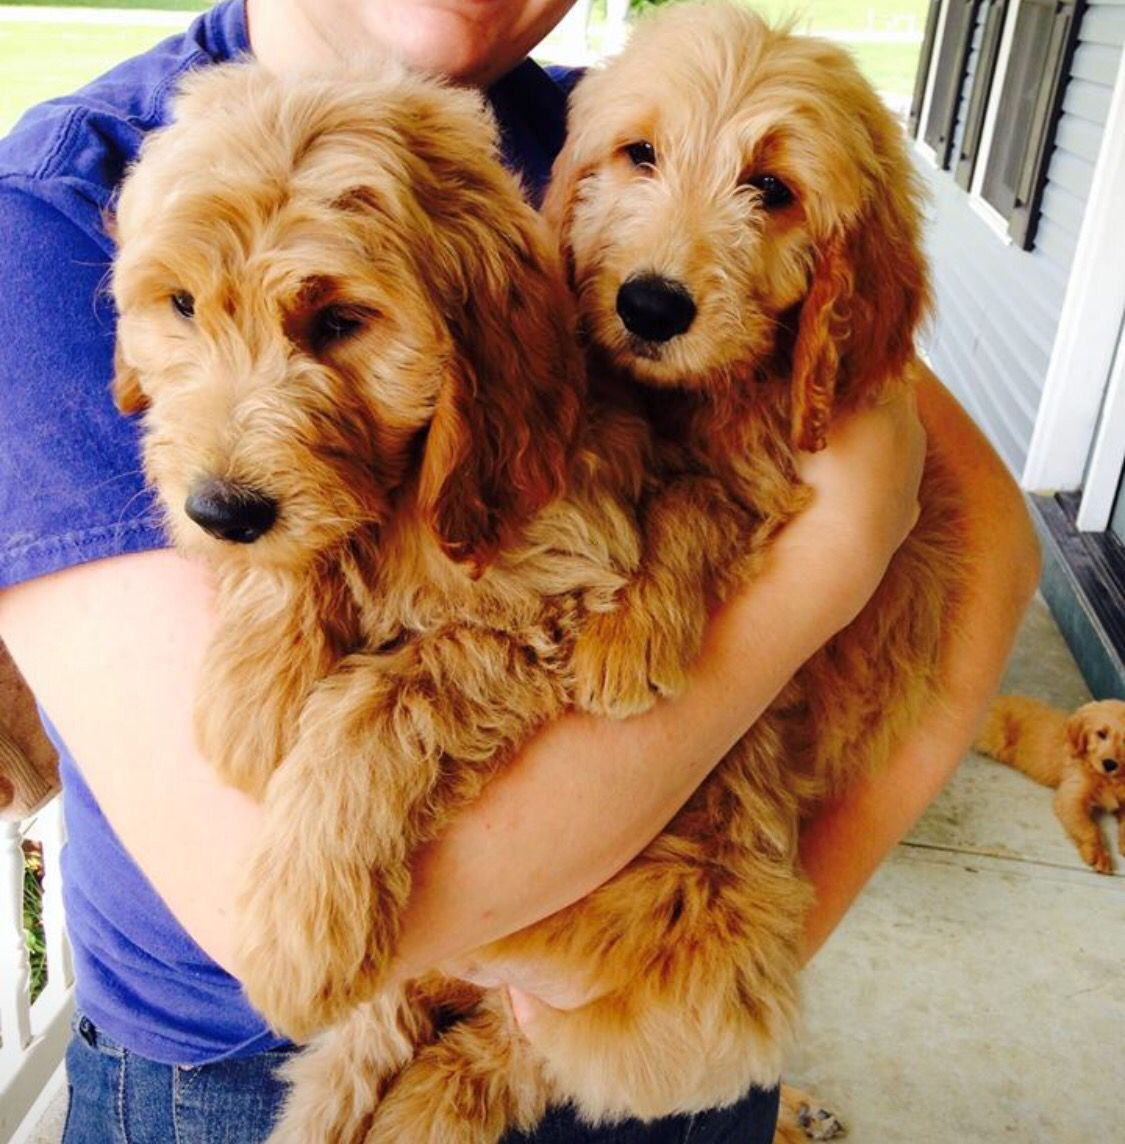 Exceptional Puppies From Doodle Bug Goldendoodles Based Out Of Dayton Ohio And Can Be Found On Facebook Puppies Goldendoodle Dayton Ohio